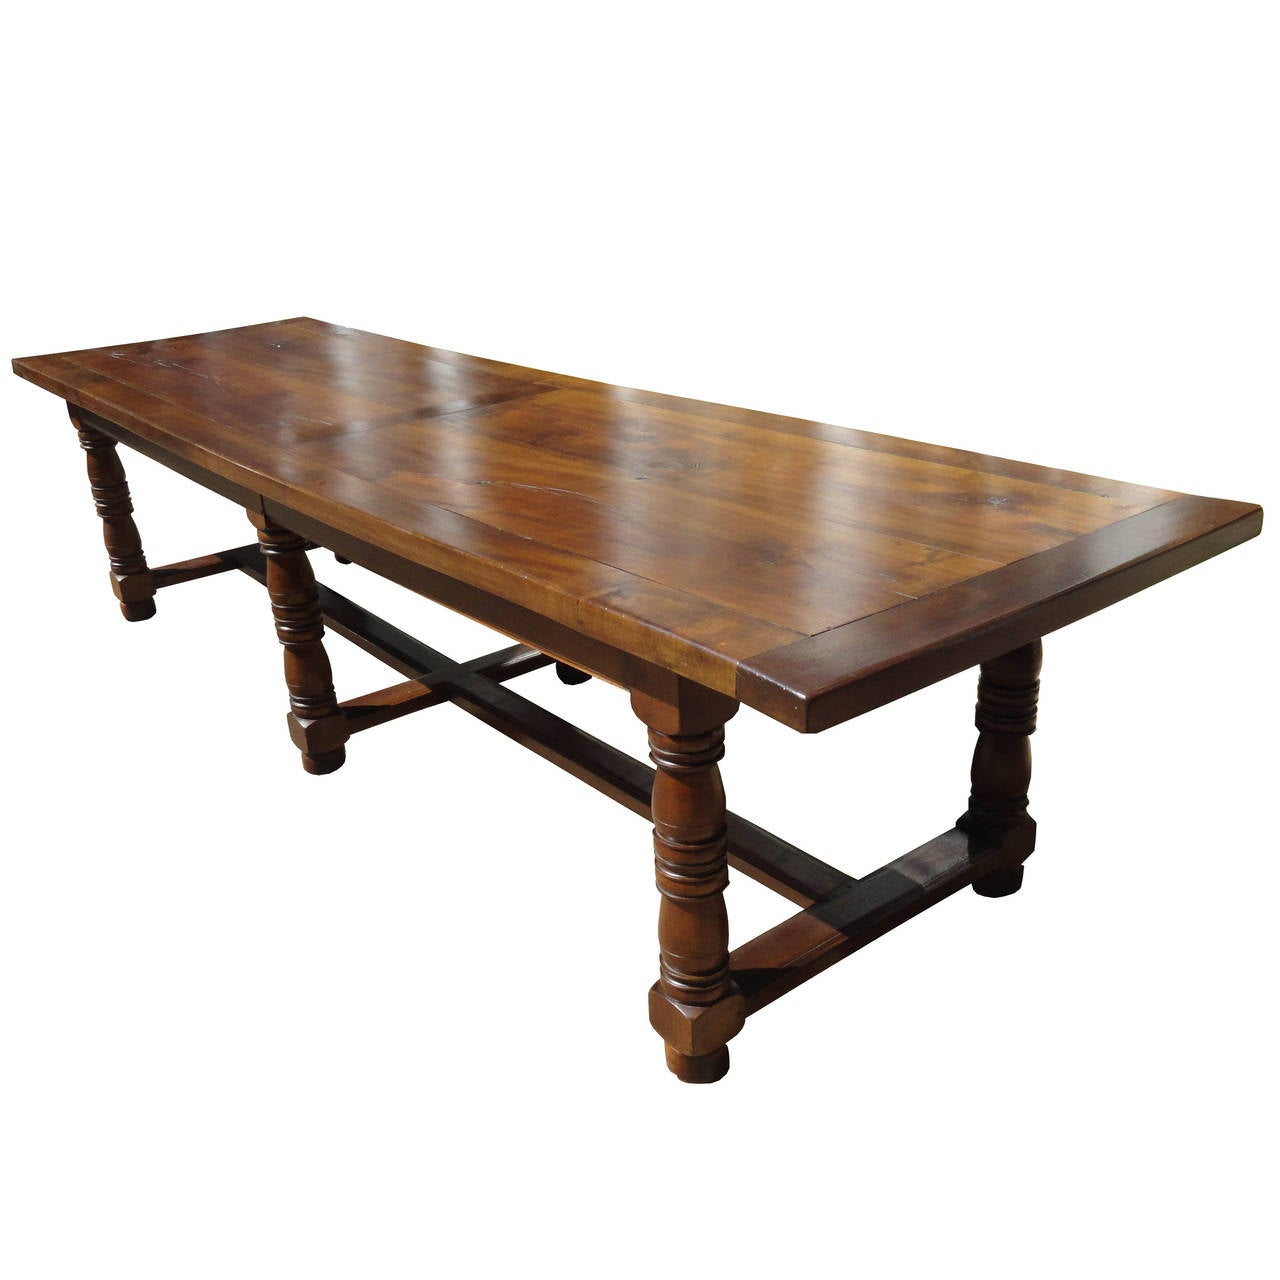 19th Century French Trestle Table from Provence at 1stdibs : 91tml from www.1stdibs.com size 1280 x 1280 jpeg 74kB